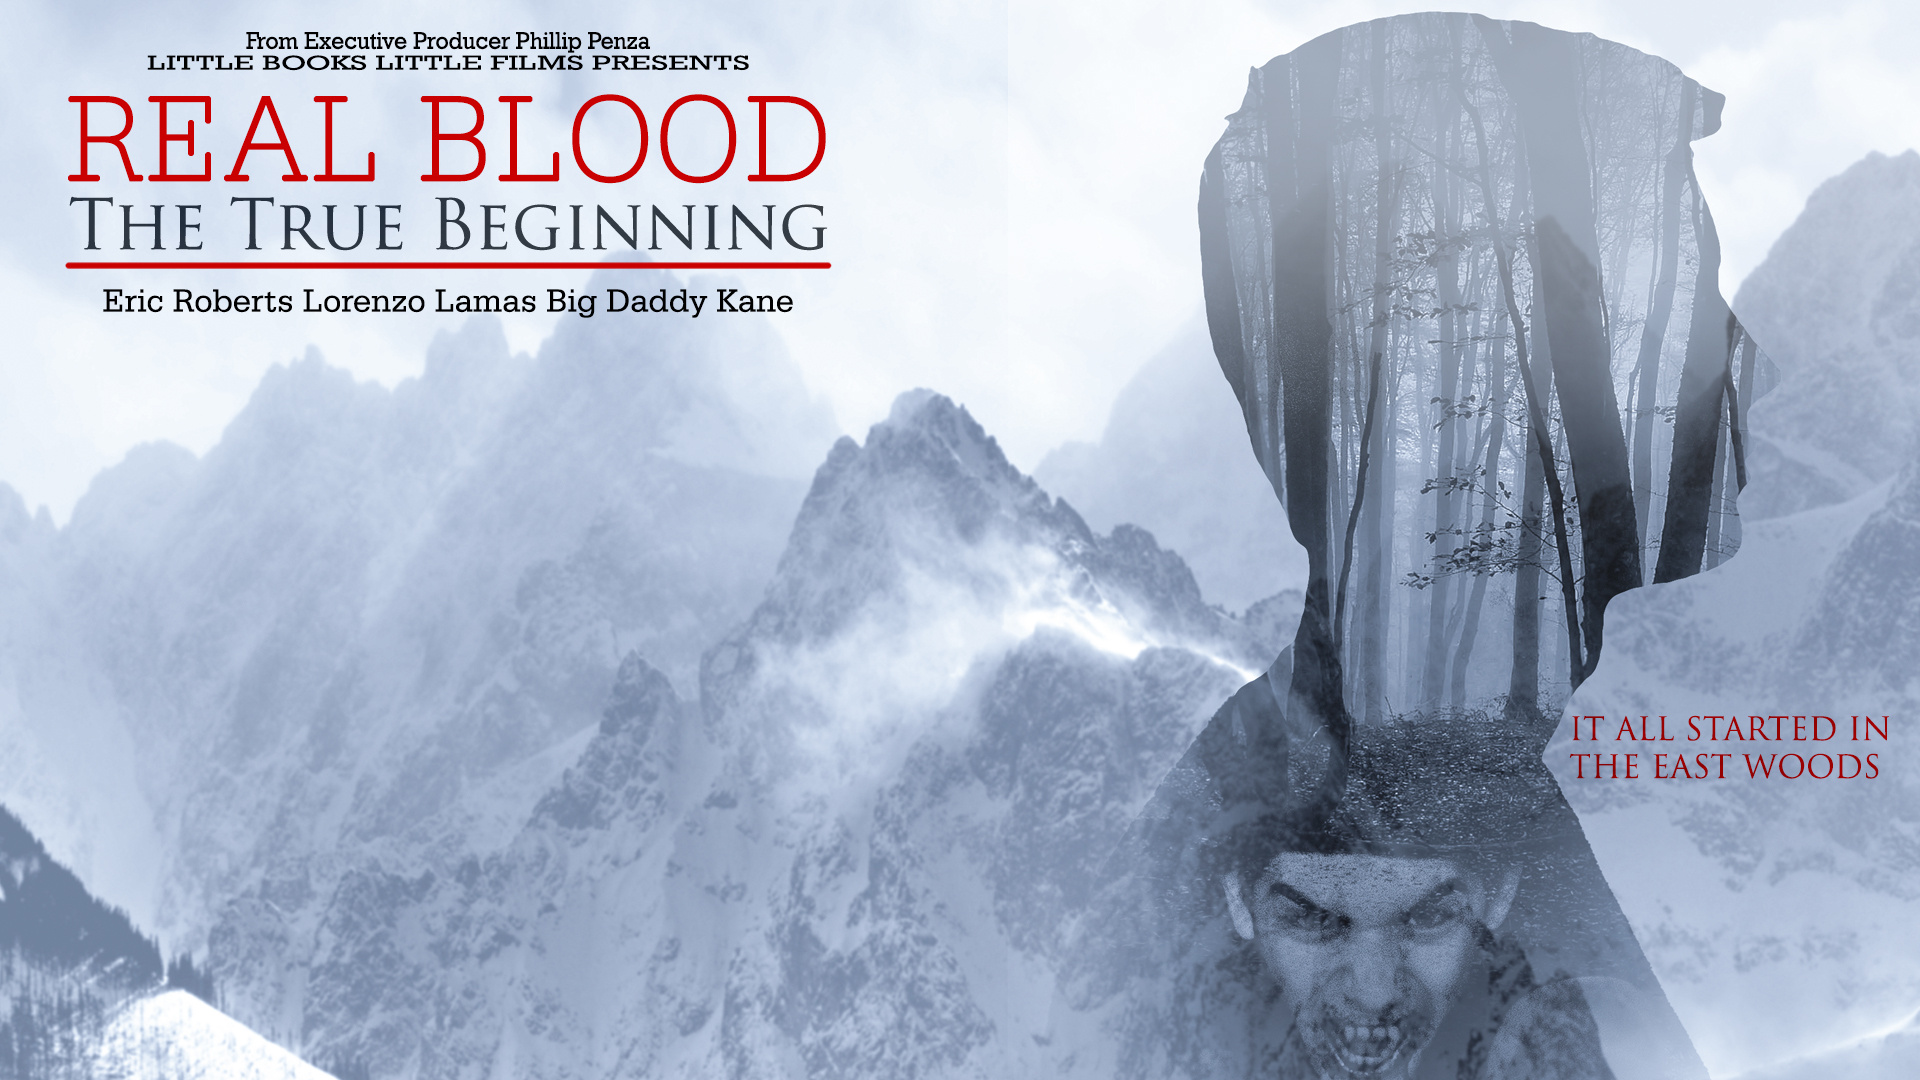 Real Blood the True Beginning